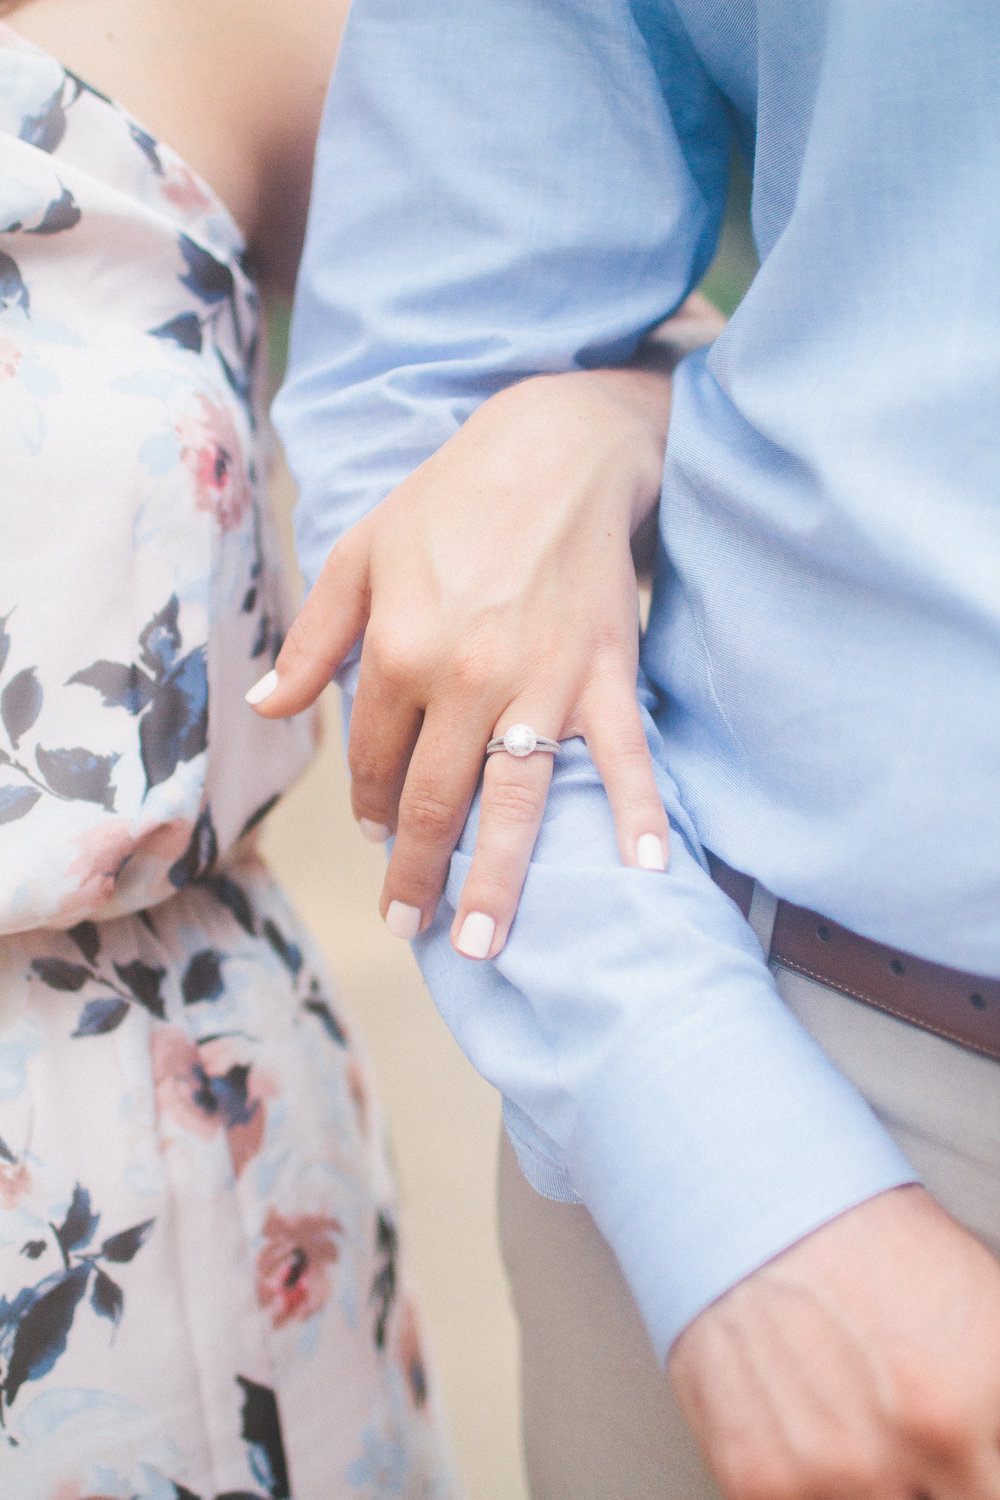 Engaged couple showing off engagement ring at Boone Hall Plantation, Charleston South Carolina by Danielle Gallo Photography